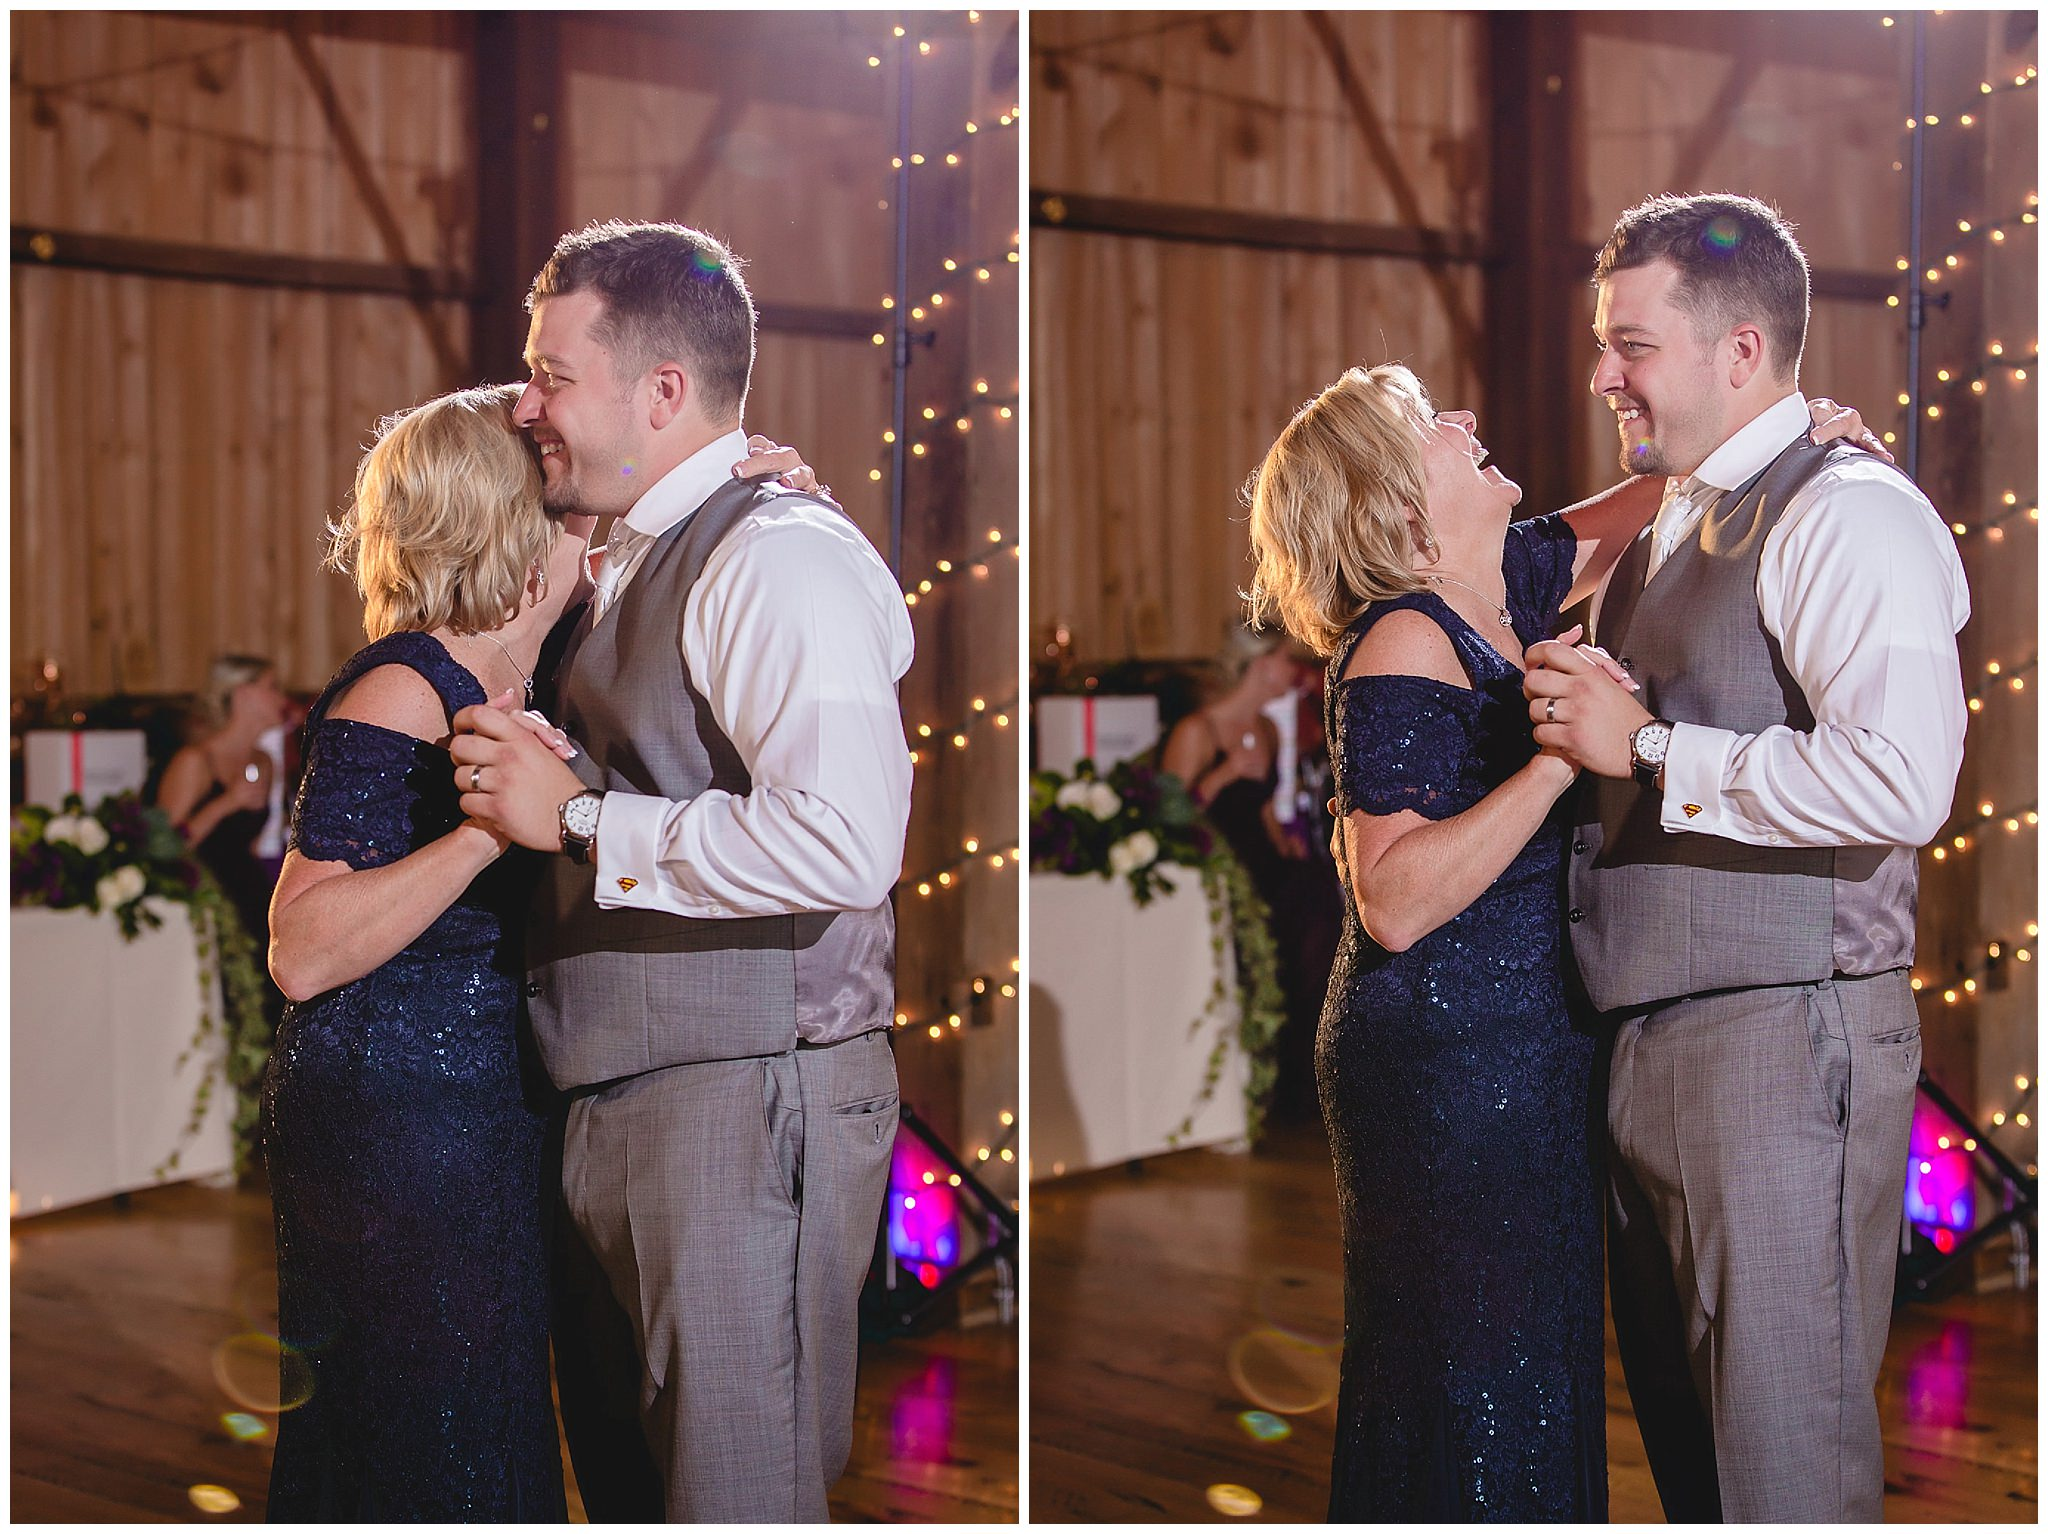 Mother son dance at a White Barn wedding reception